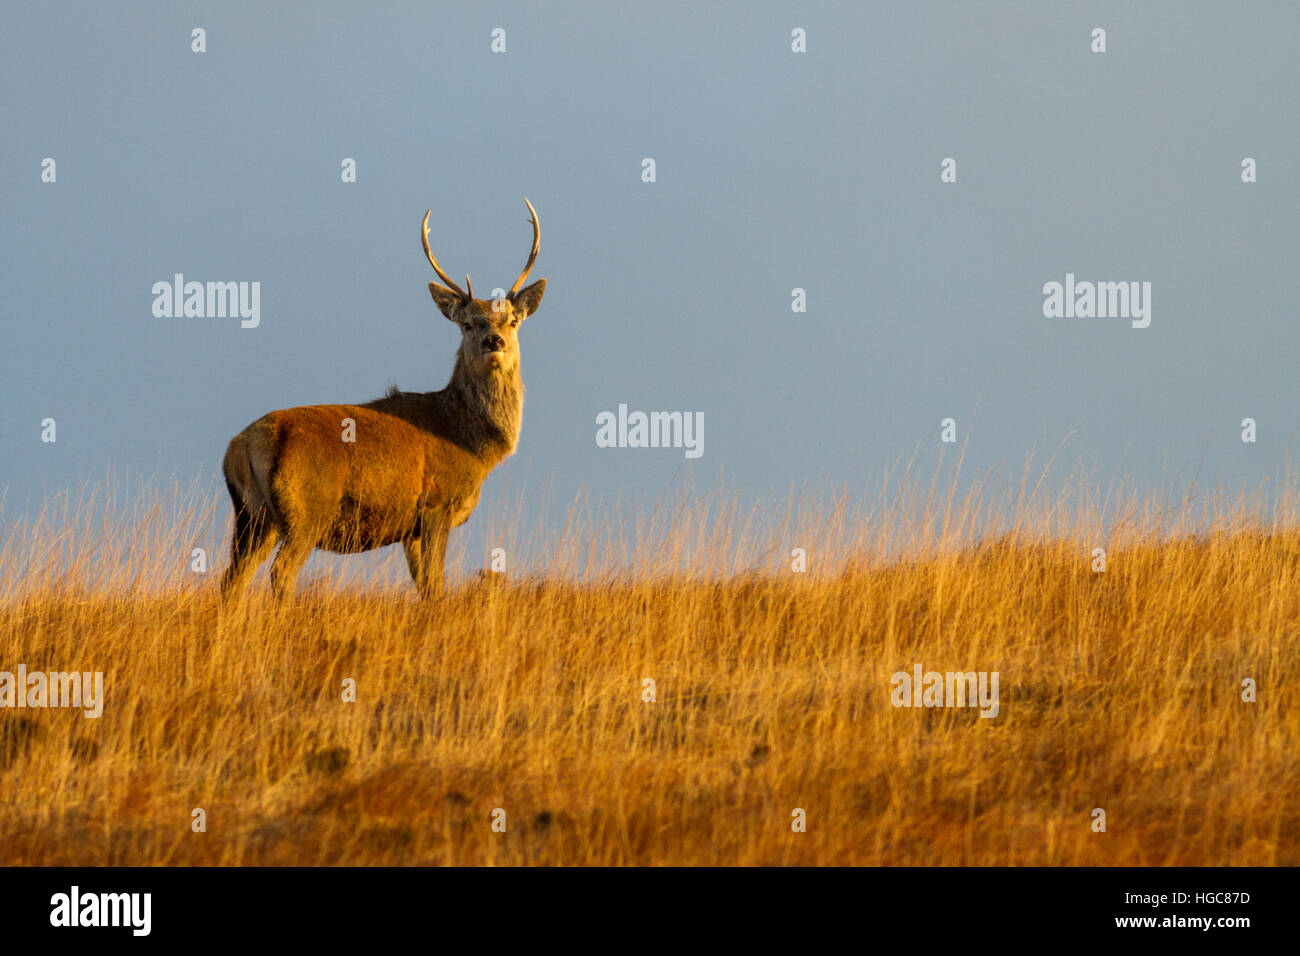 Red deer stag at dawn, Isle of Jura - where the people are out-numbered c. 30 to 1 by red deer. Scotland - Stock Image